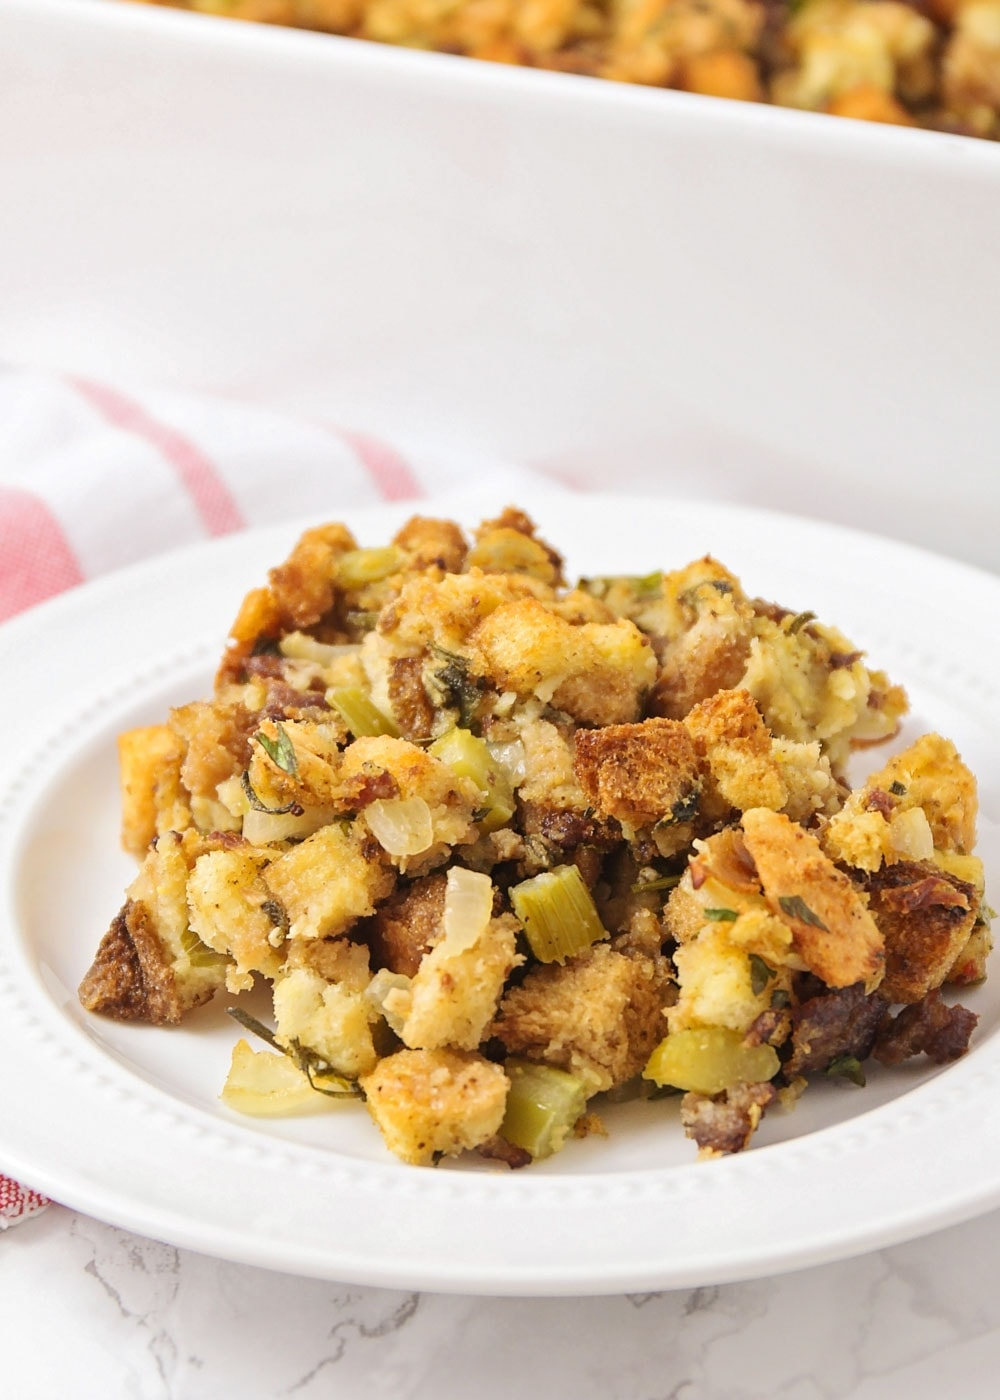 Sausage stuffing recipe on a white plate